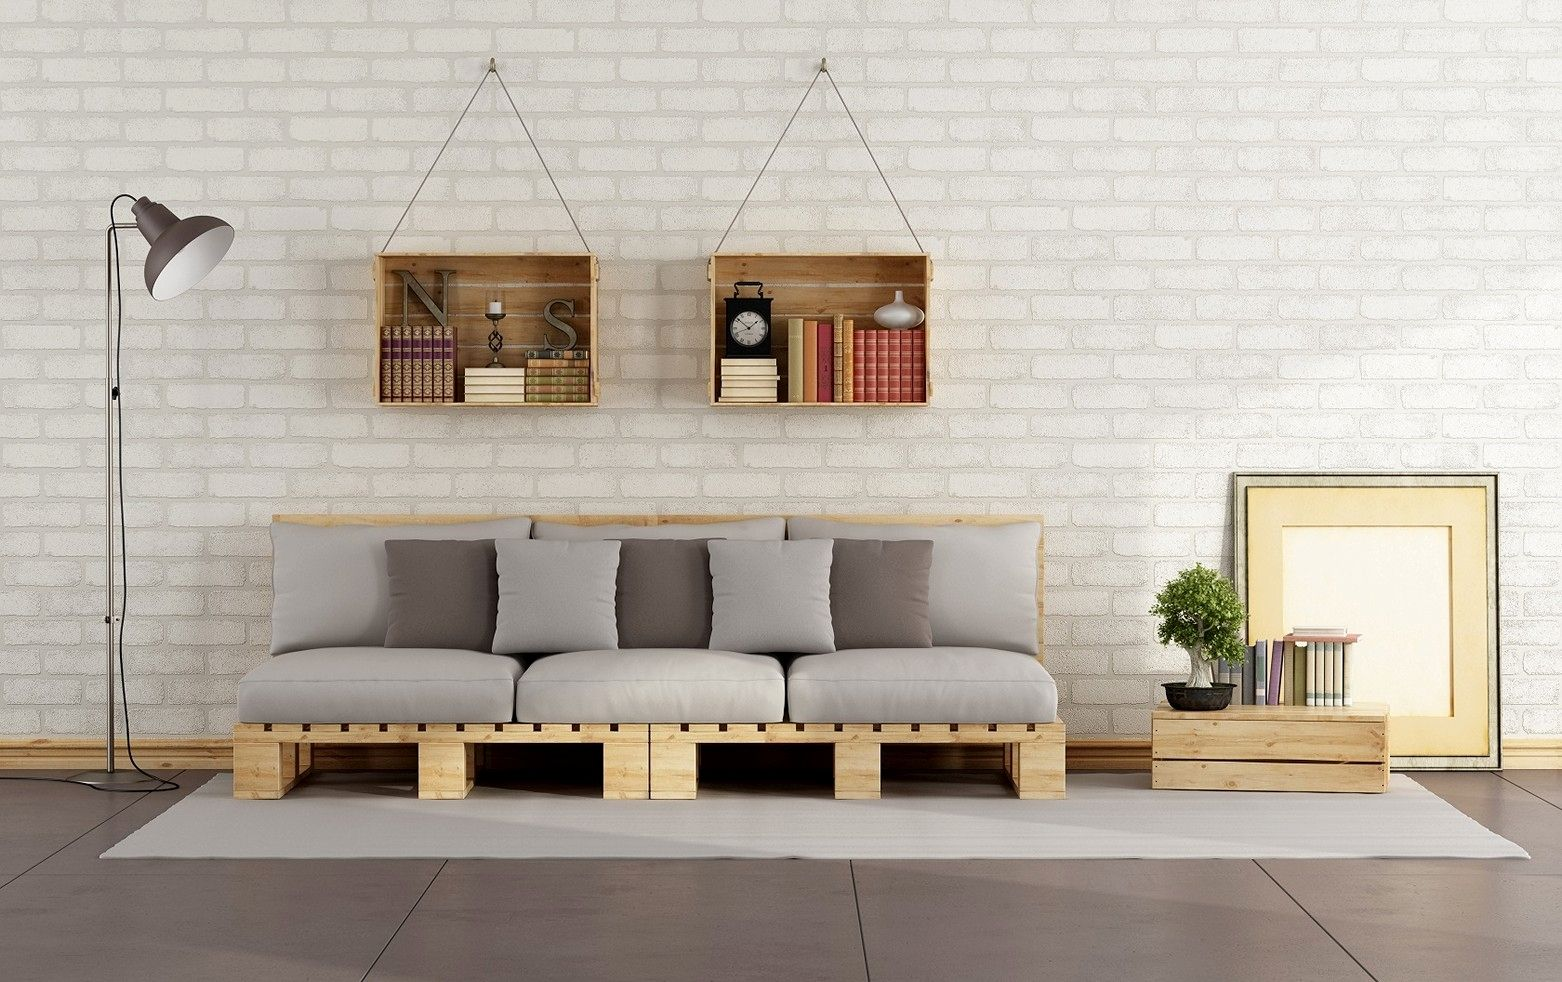 diy pallet living room furniture made in usa awesome project designs for you your spaces bedroom